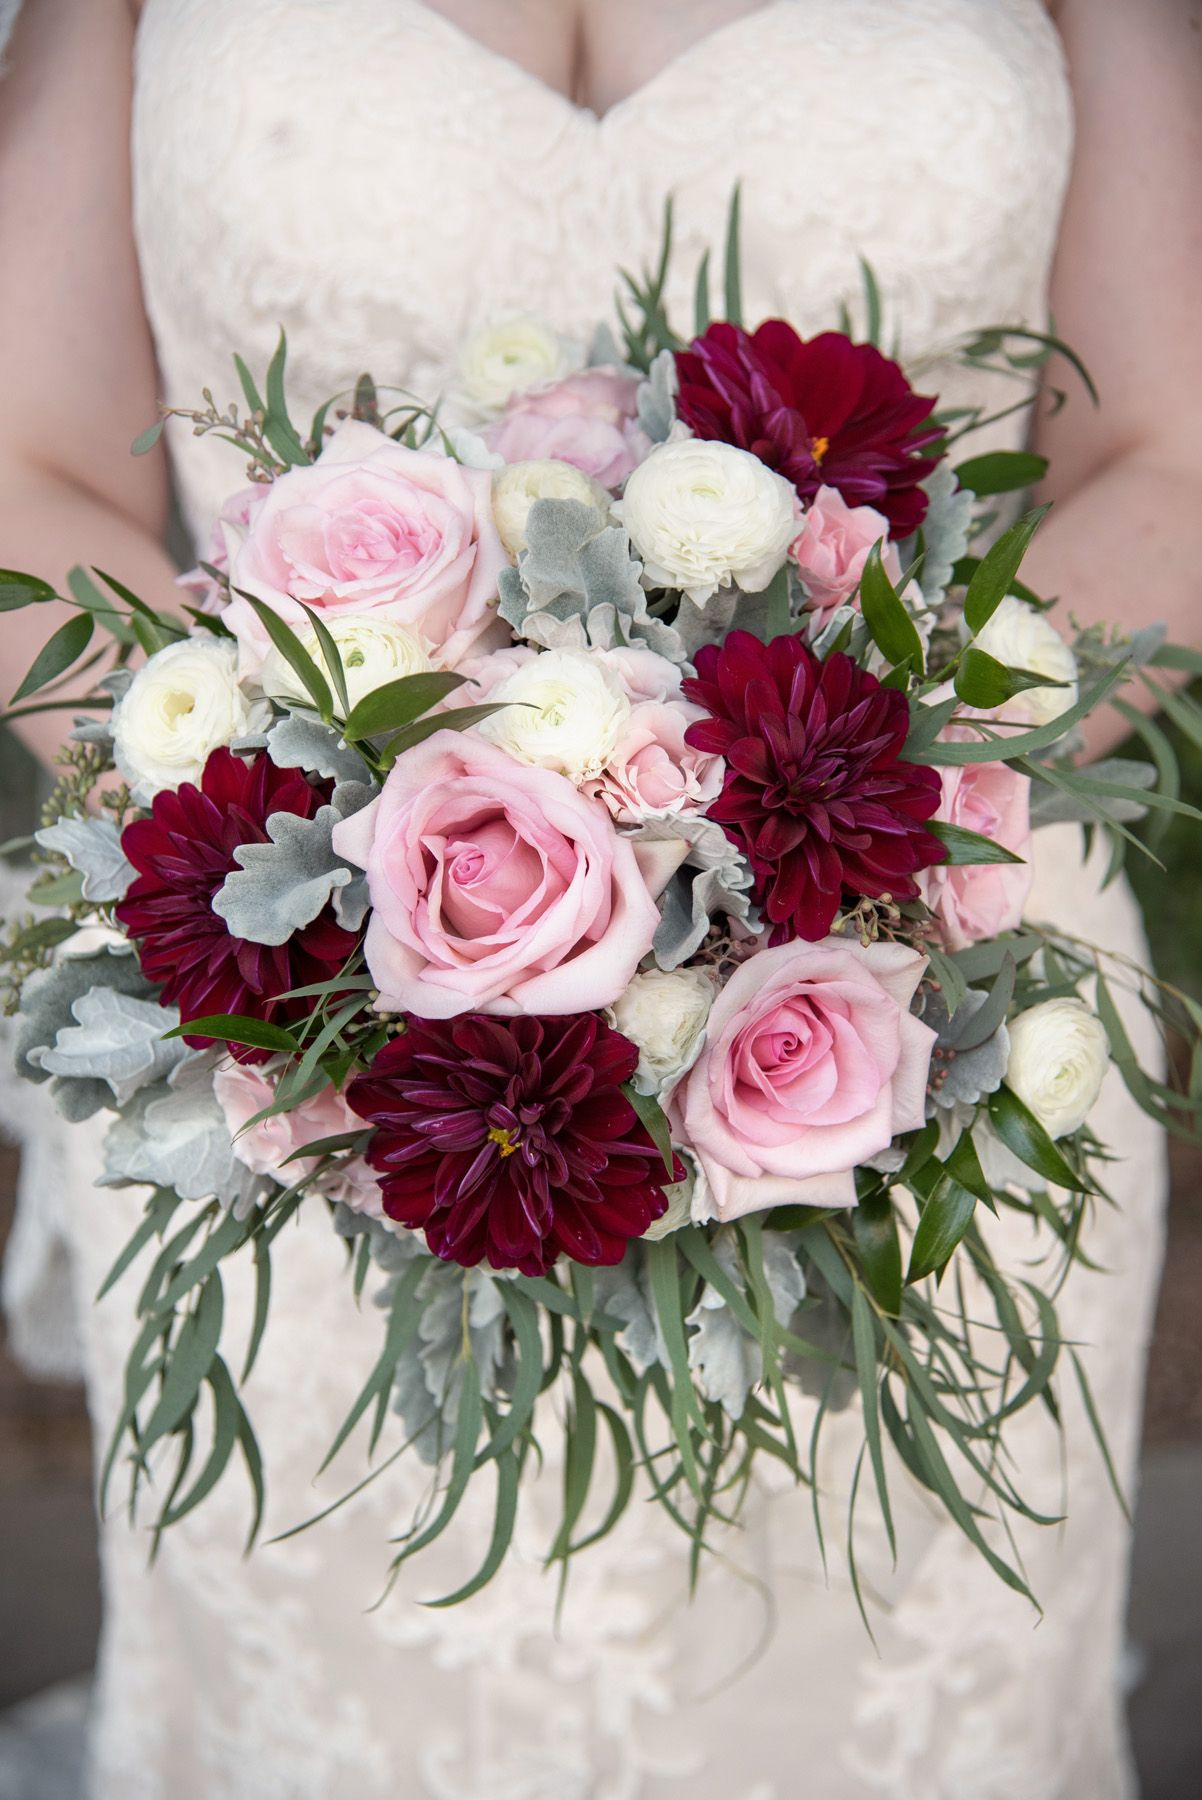 Vintage Inspired Wedding Bouquets With Natural Tones And Blush